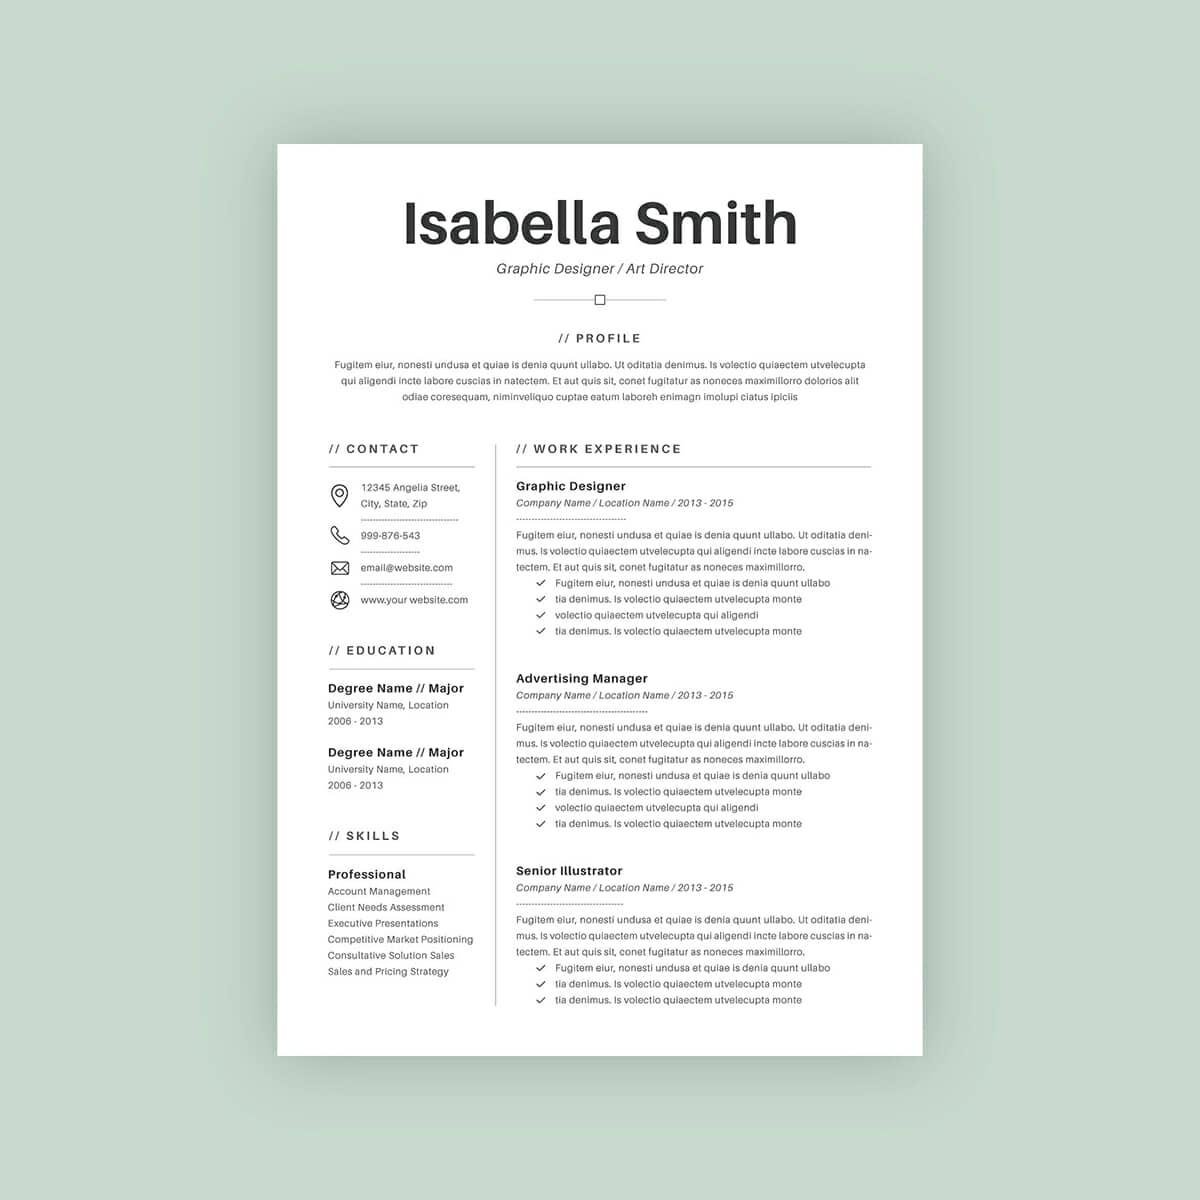 Basic Template For Resume With A Lot Of Experience. U201c  Resume Templates With Photo